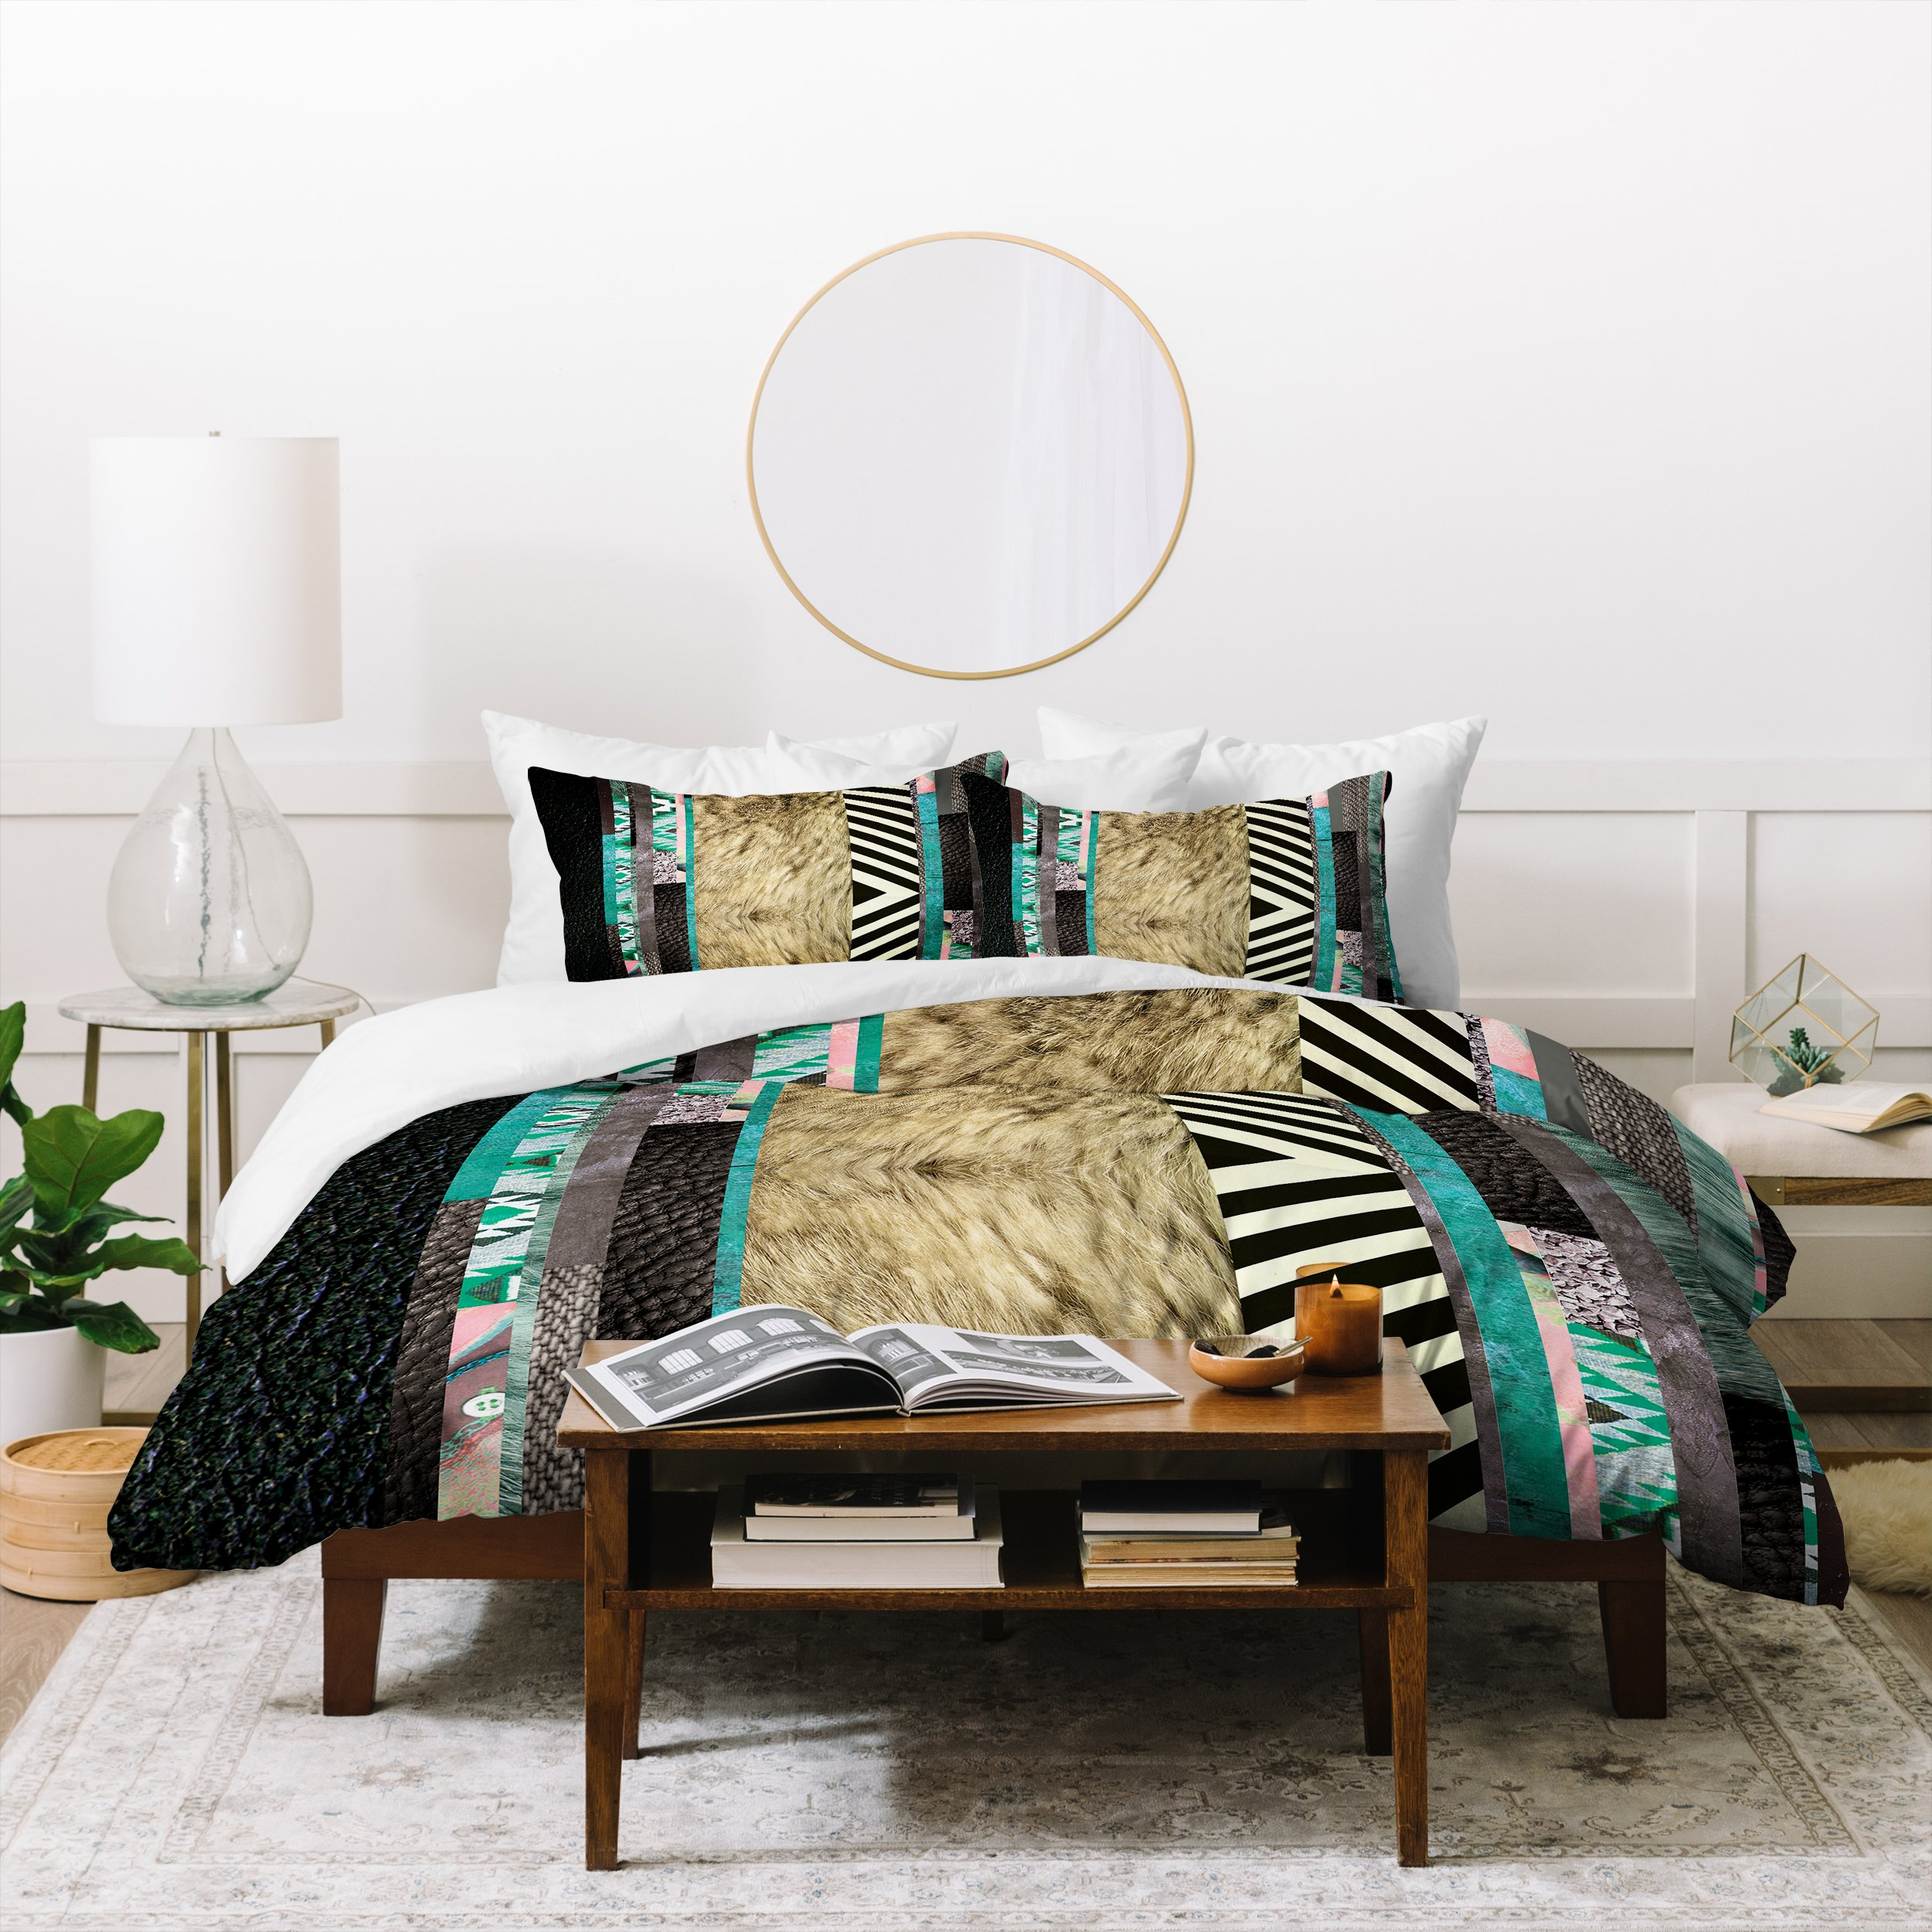 Image of Kei Eudoxie Duvet Cover